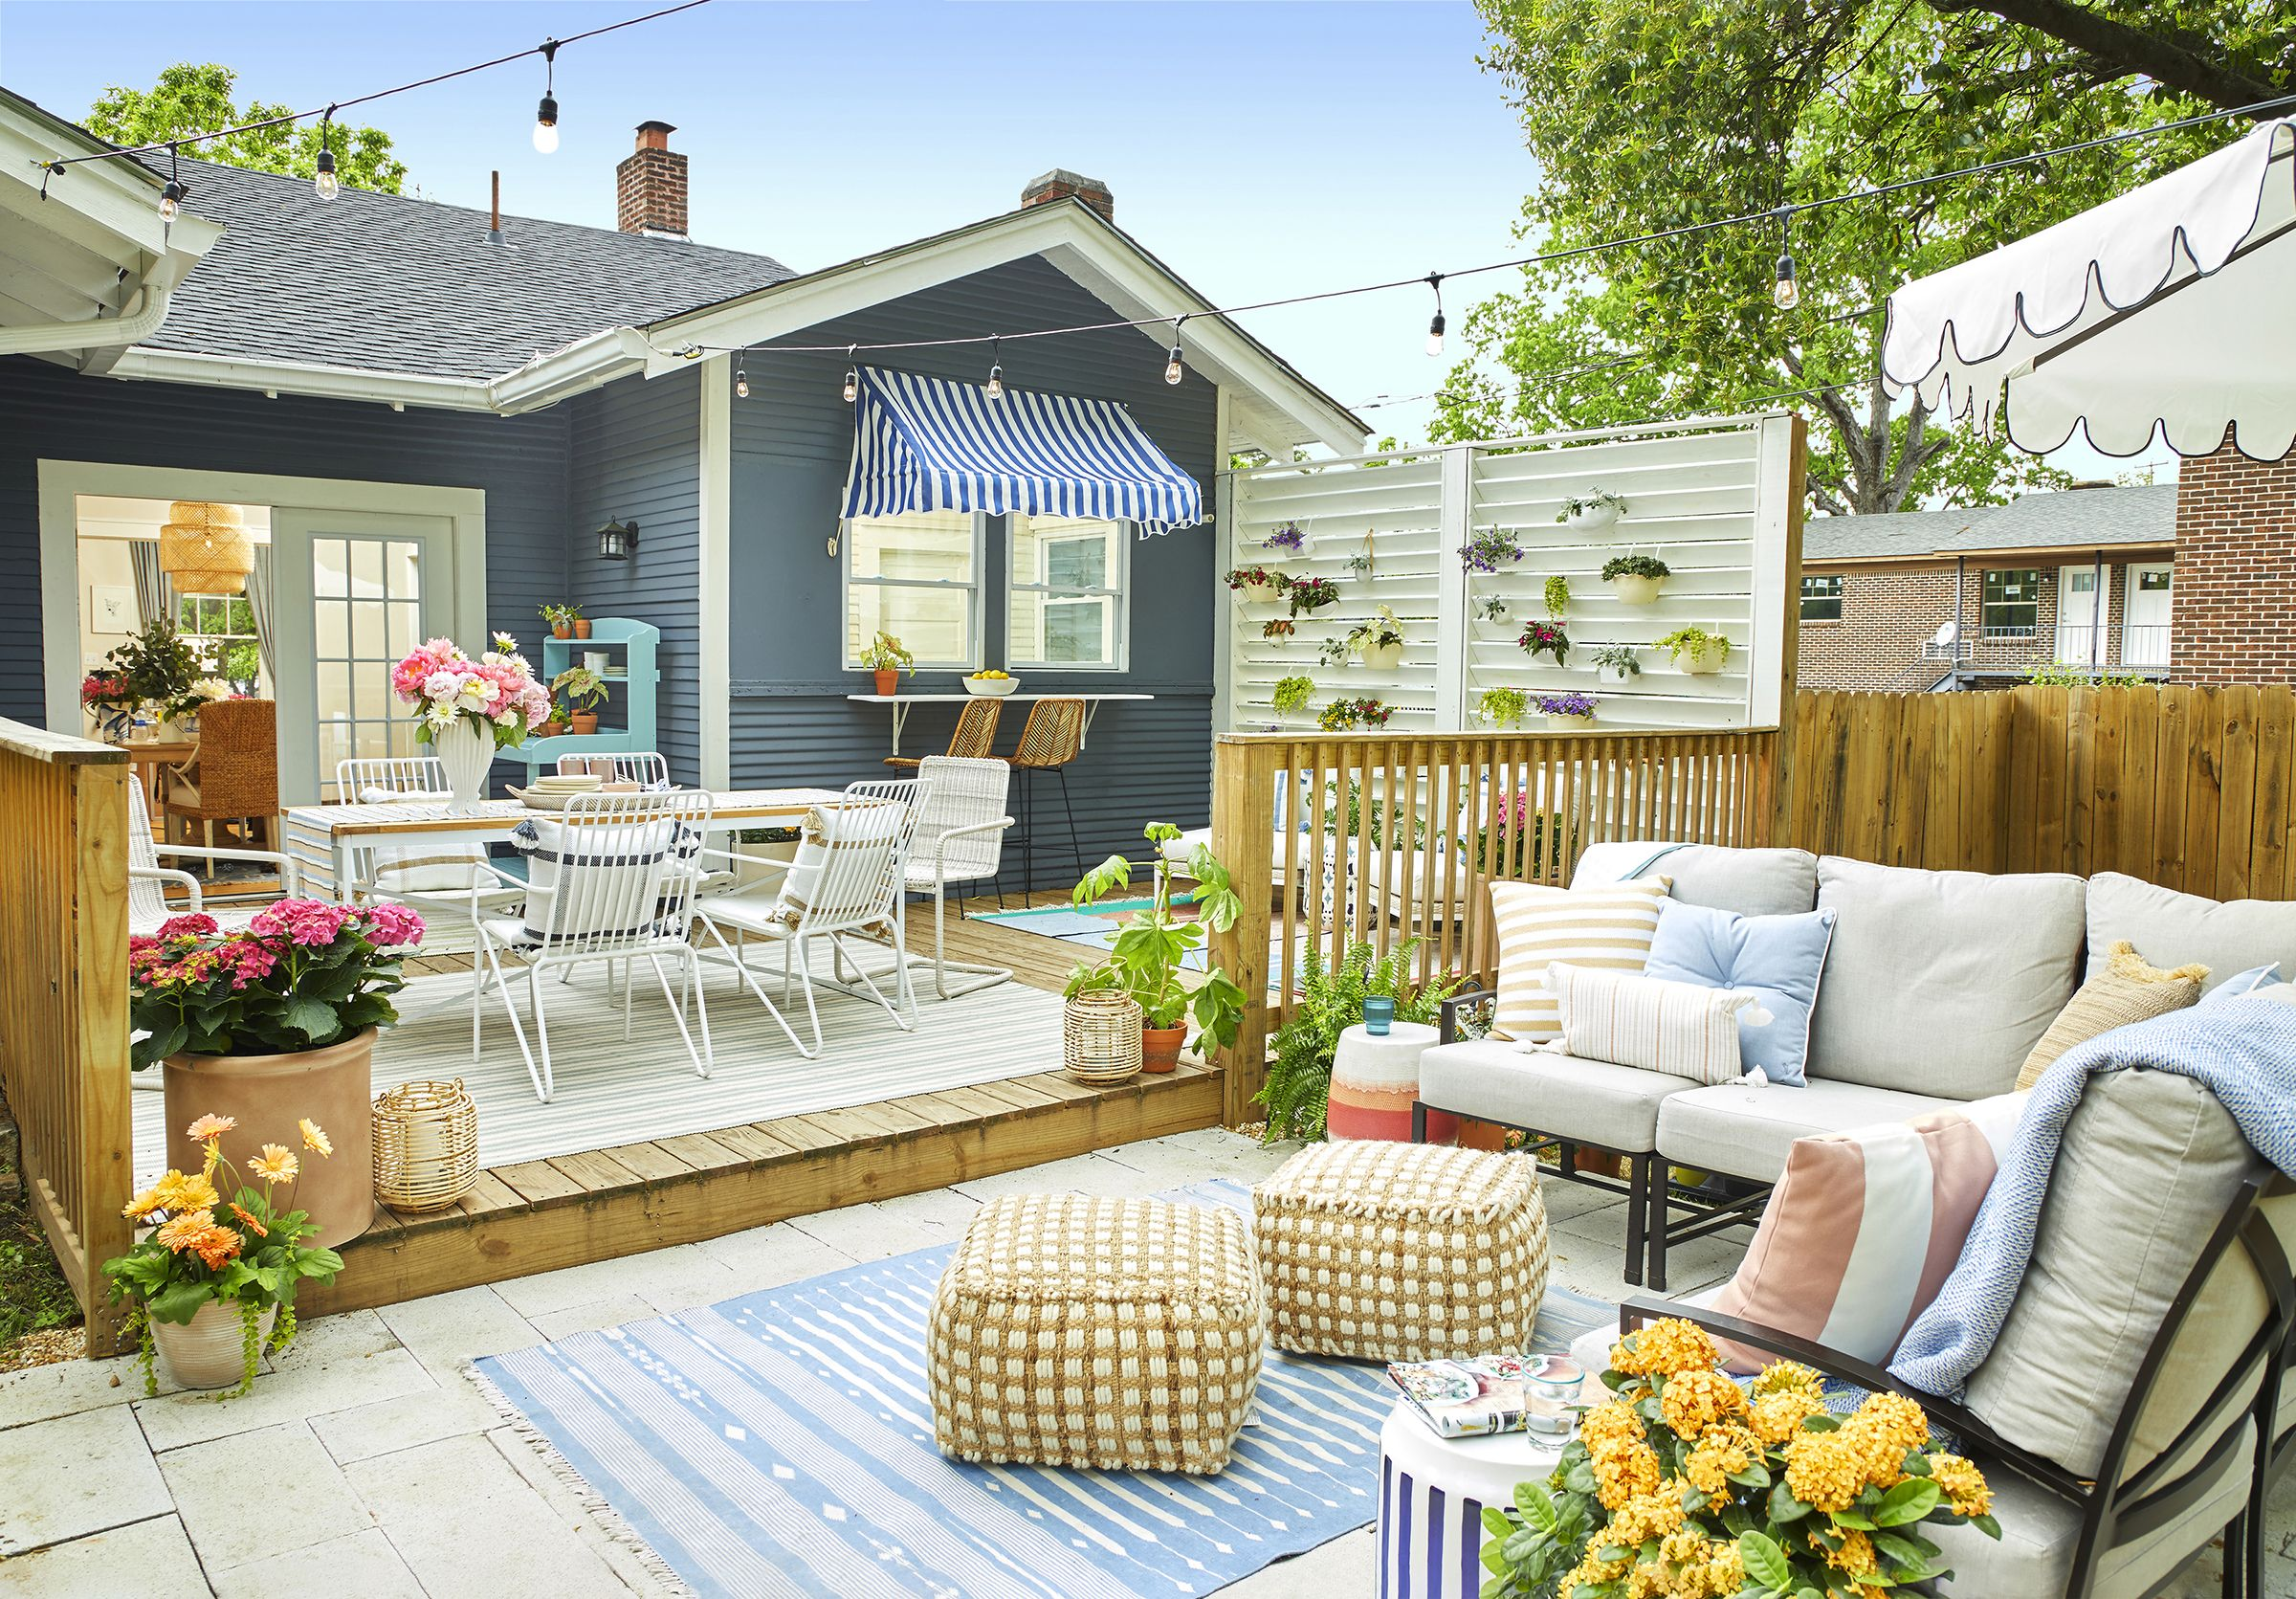 35 Best Patio And Porch Design Ideas Decorating Your